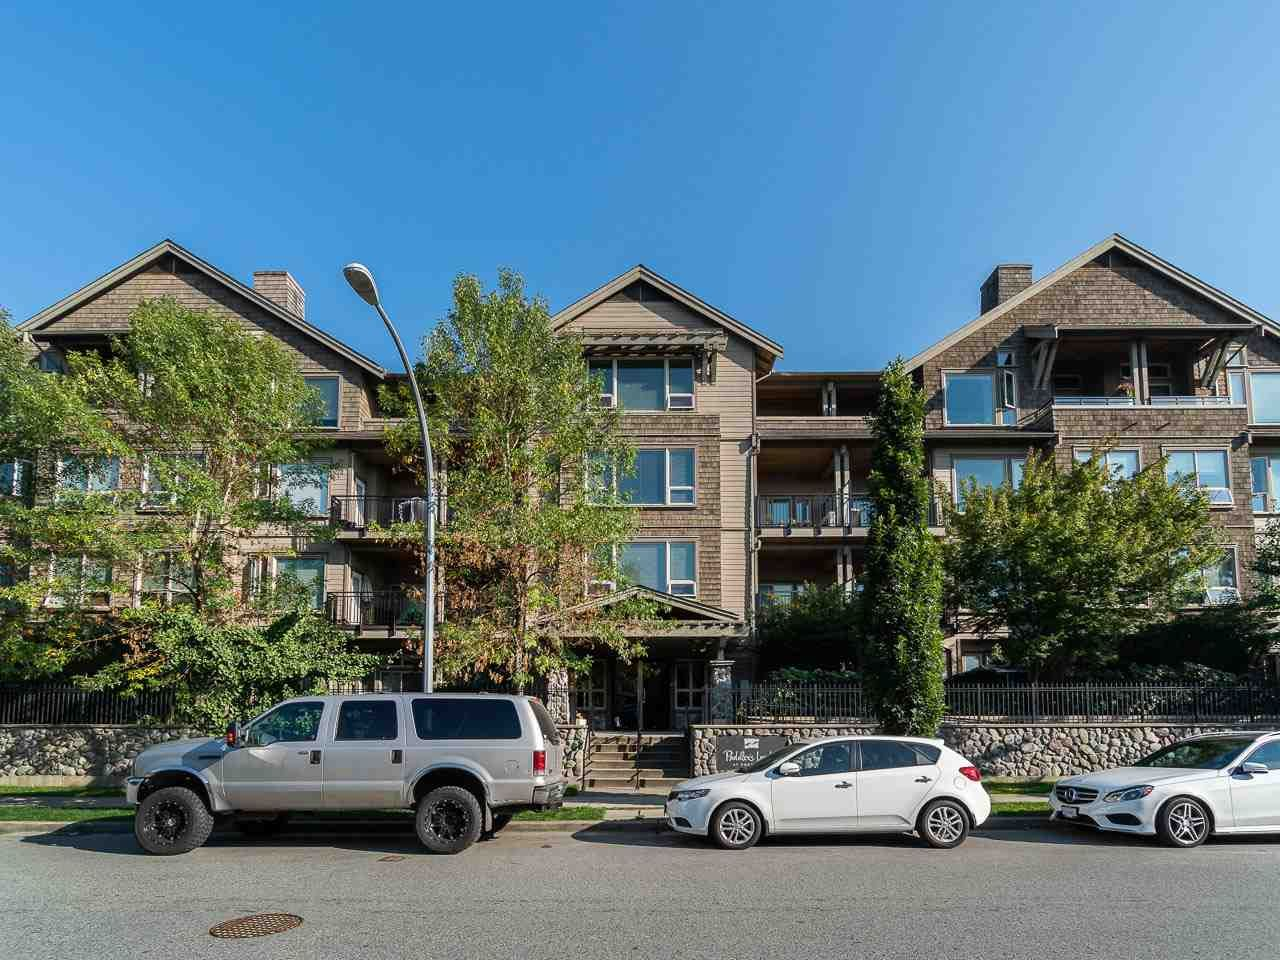 """Main Photo: 111 250 SALTER Street in New Westminster: Queensborough Condo for sale in """"PADDLERS LANDING"""" : MLS®# R2304271"""